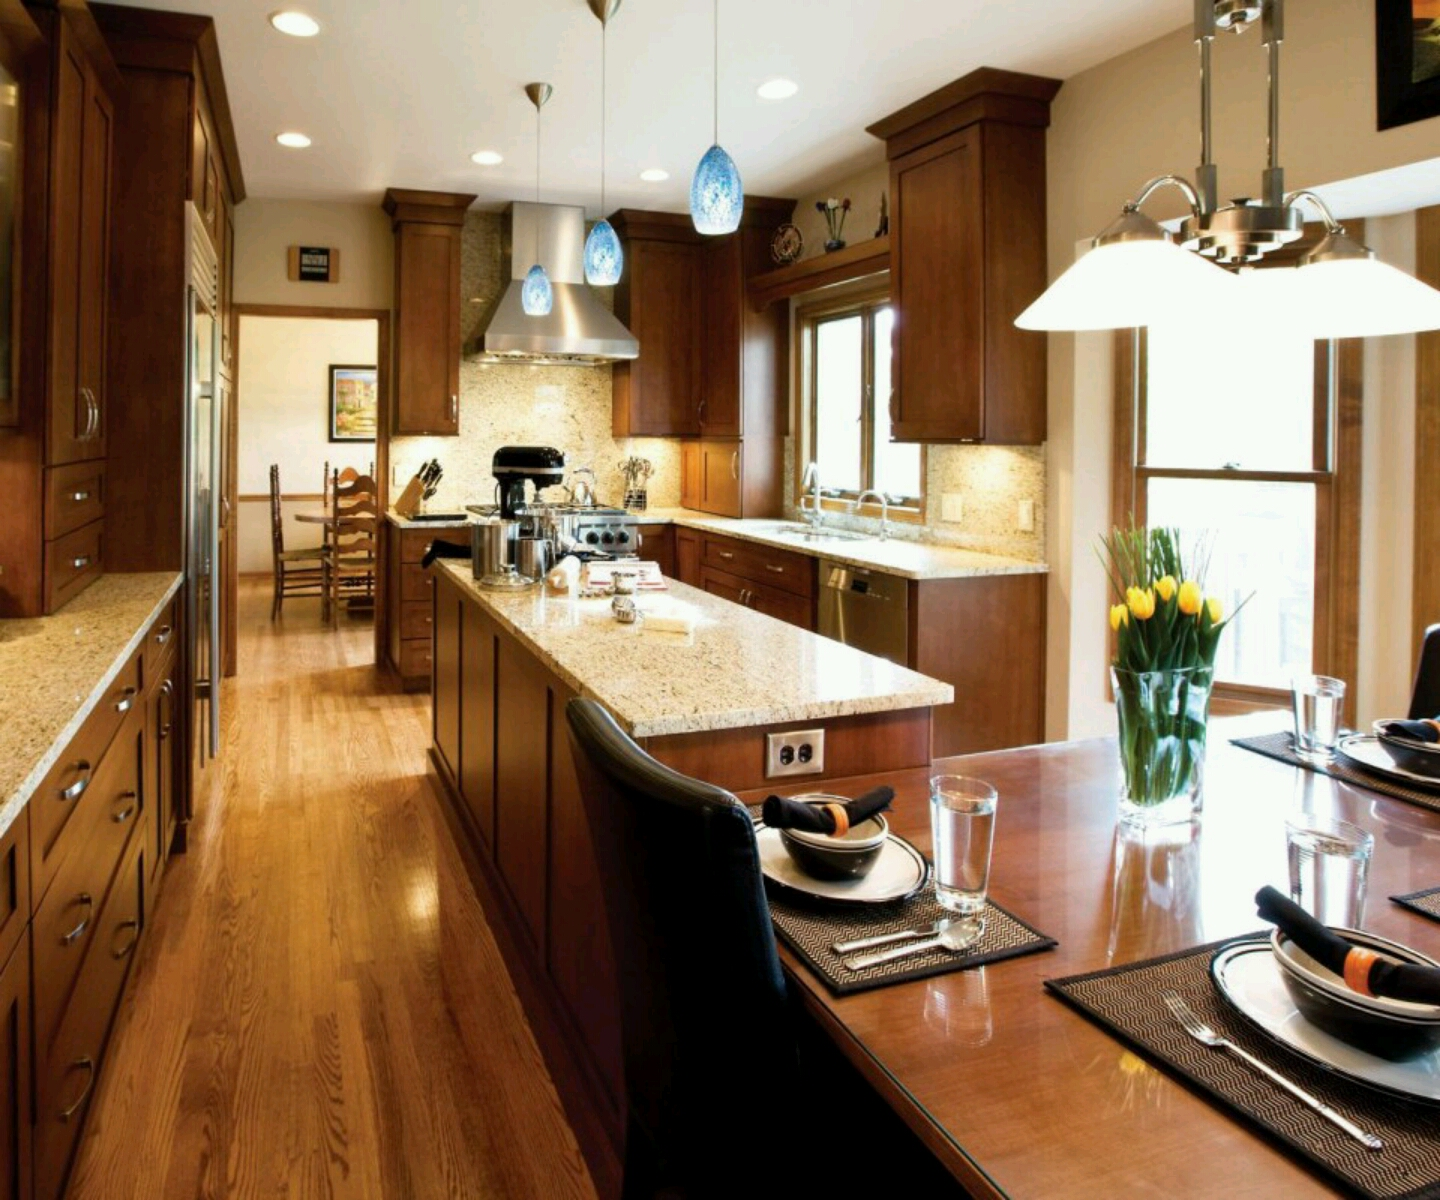 New Home Designs Latest Beautiful Modern Homes Designs: New Home Designs Latest.: Kitchen Cabinets Designs Modern